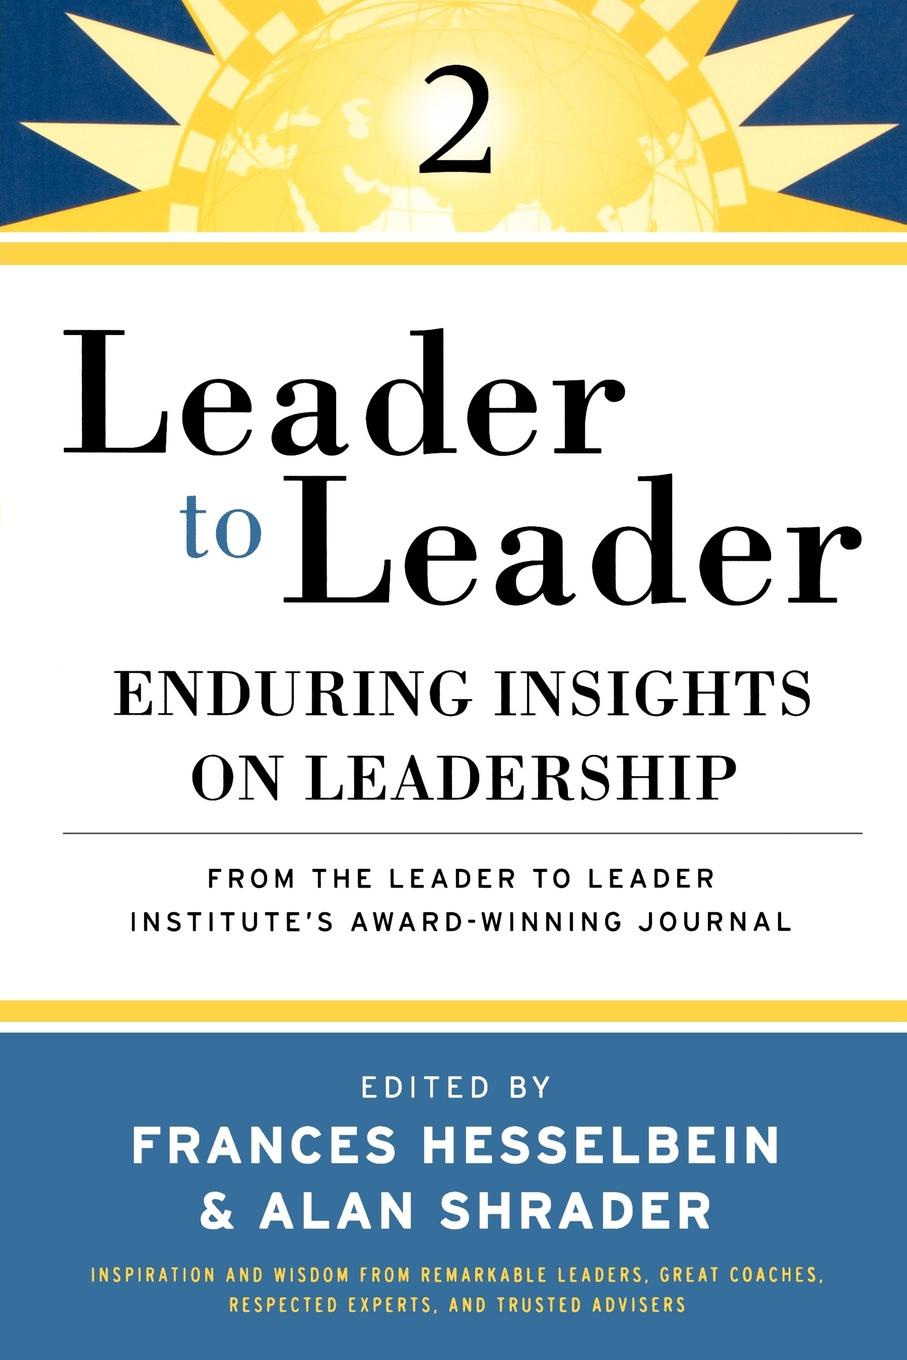 Фото - Leader to Leader (Ltl), Enduring Insights on Leadership from the Drucker Foundation's Award-Winning Journal frances institute hesselbein leadership leader to leader ltl volume 70 fall 2013